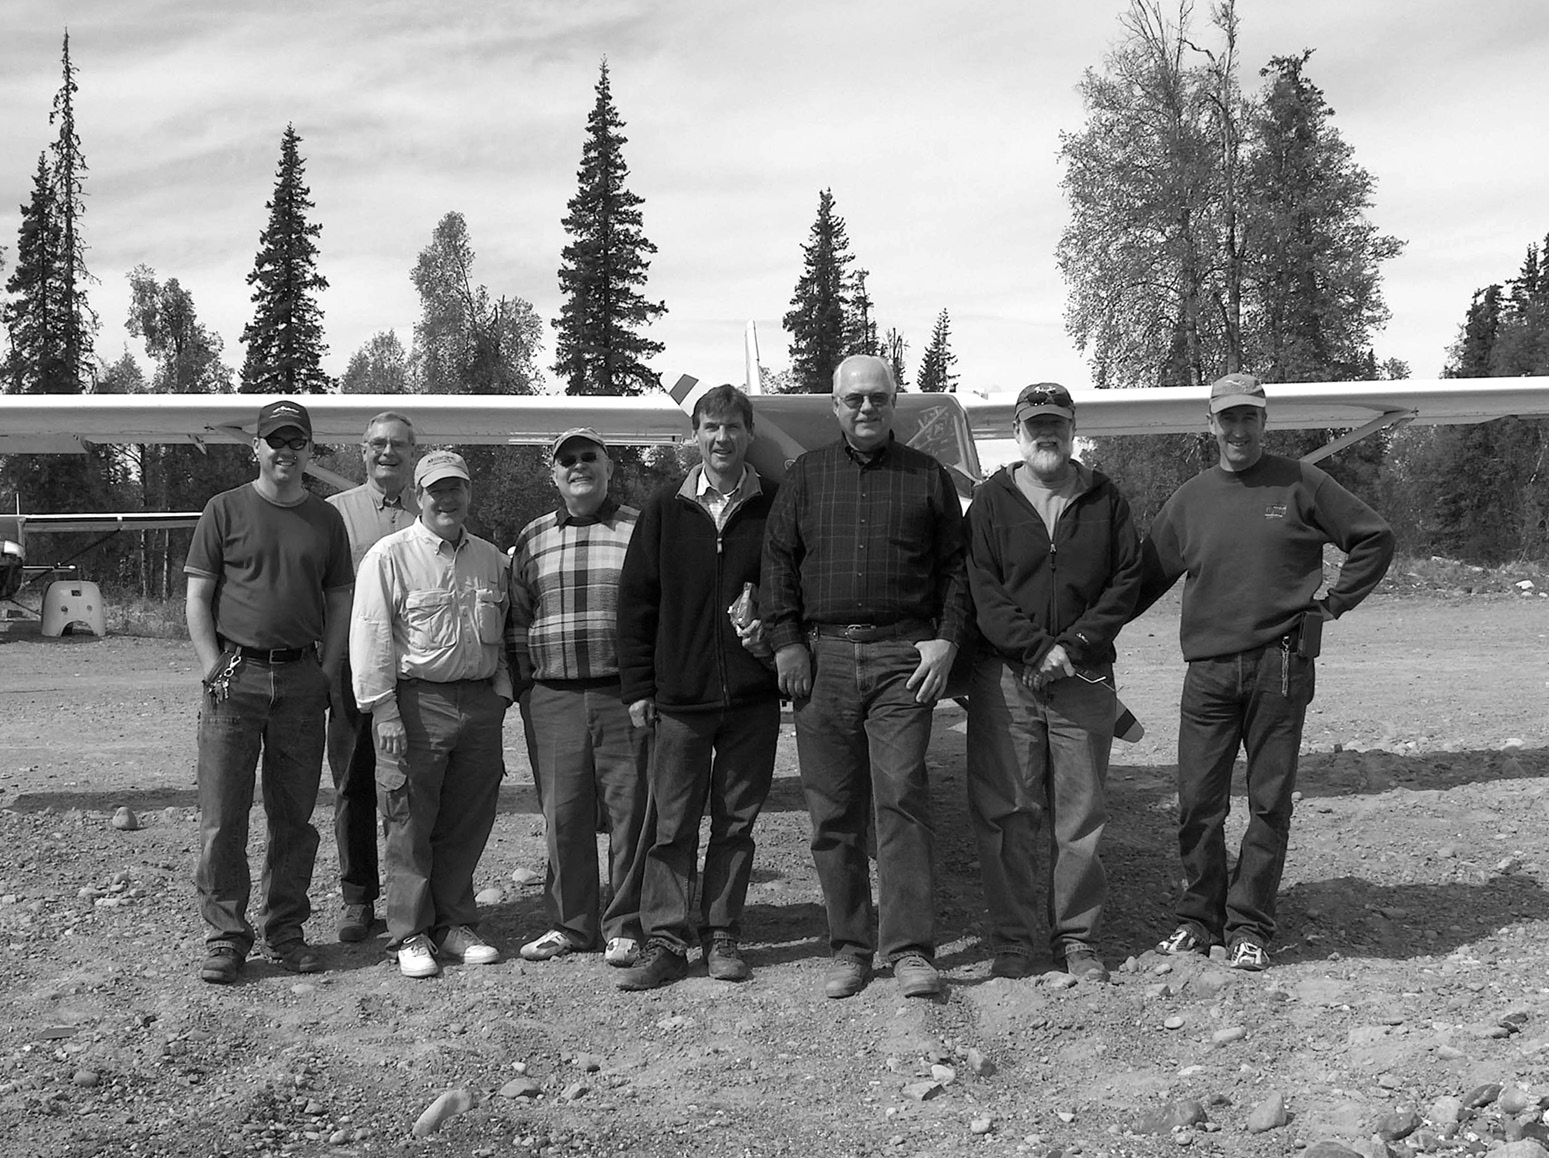 The group at Songlo Vista. Left to right - Ursel Scoles, Richard Eastman, Jeff Mitchell, Peter Cattoni, Frank Miskelly, Dave Prizio, Tom Borden, and Werner Schneider.